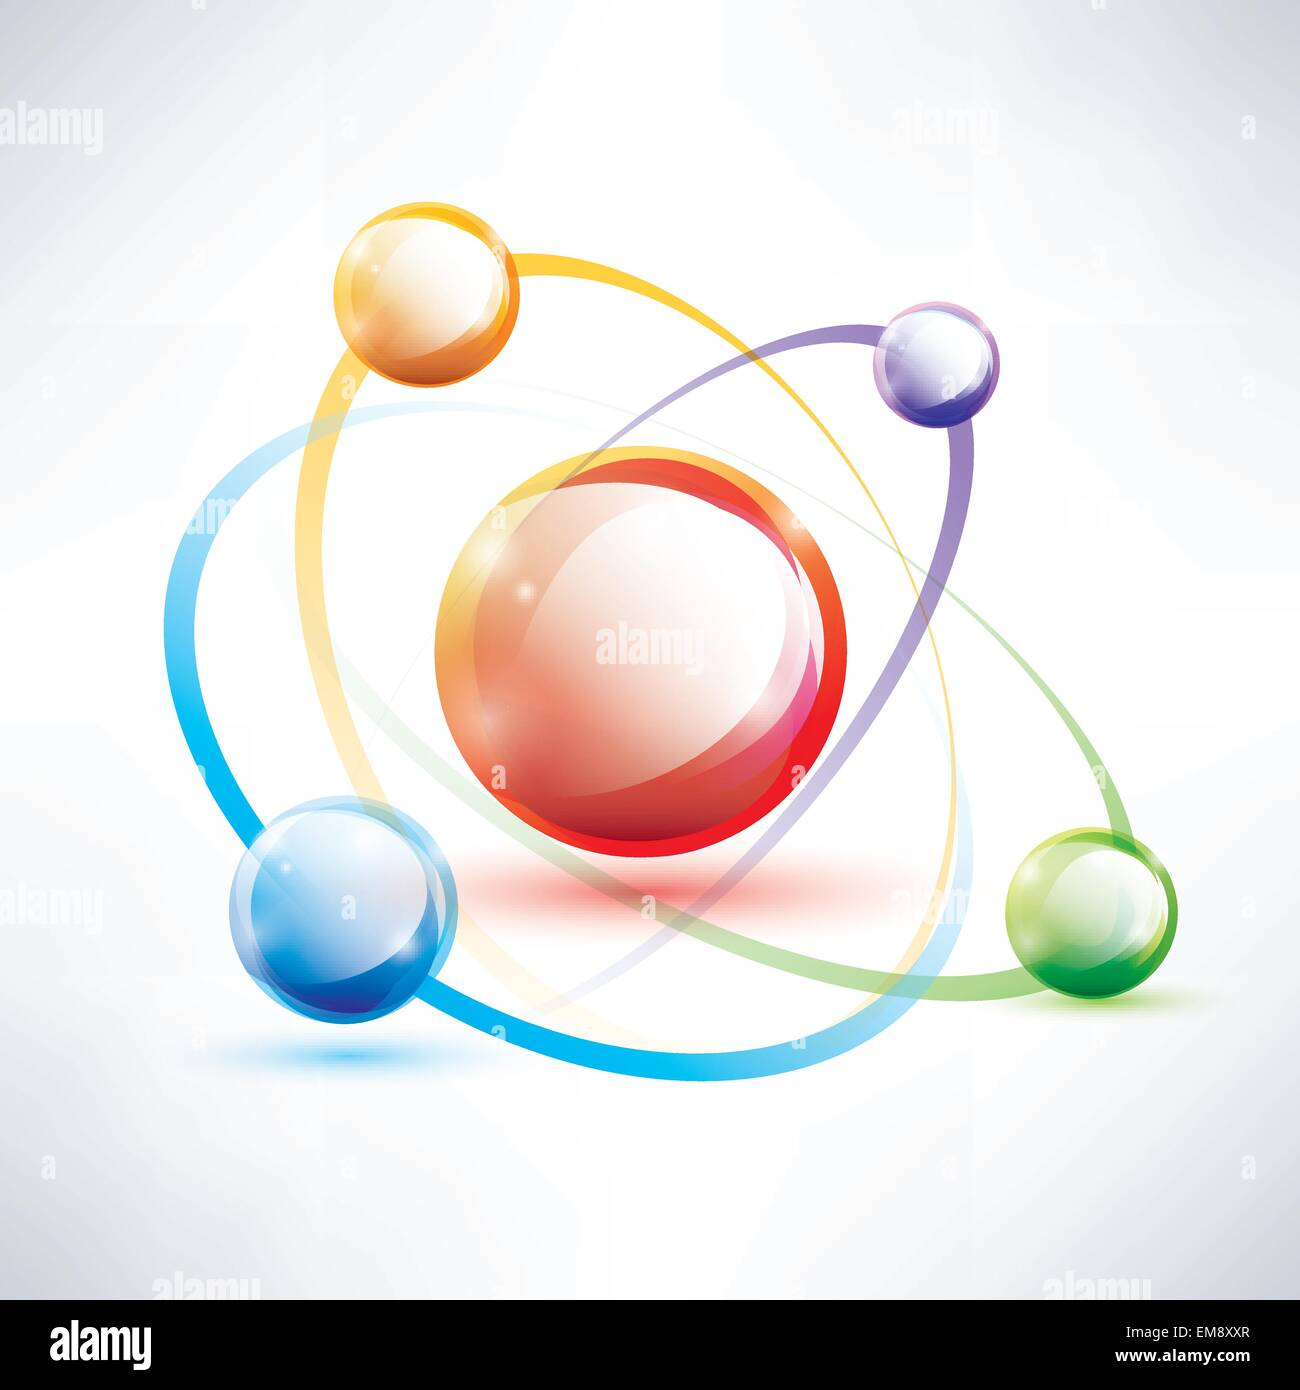 Atom structure abstract glossy icon science and energy concept atom structure abstract glossy icon science and energy concept ccuart Images